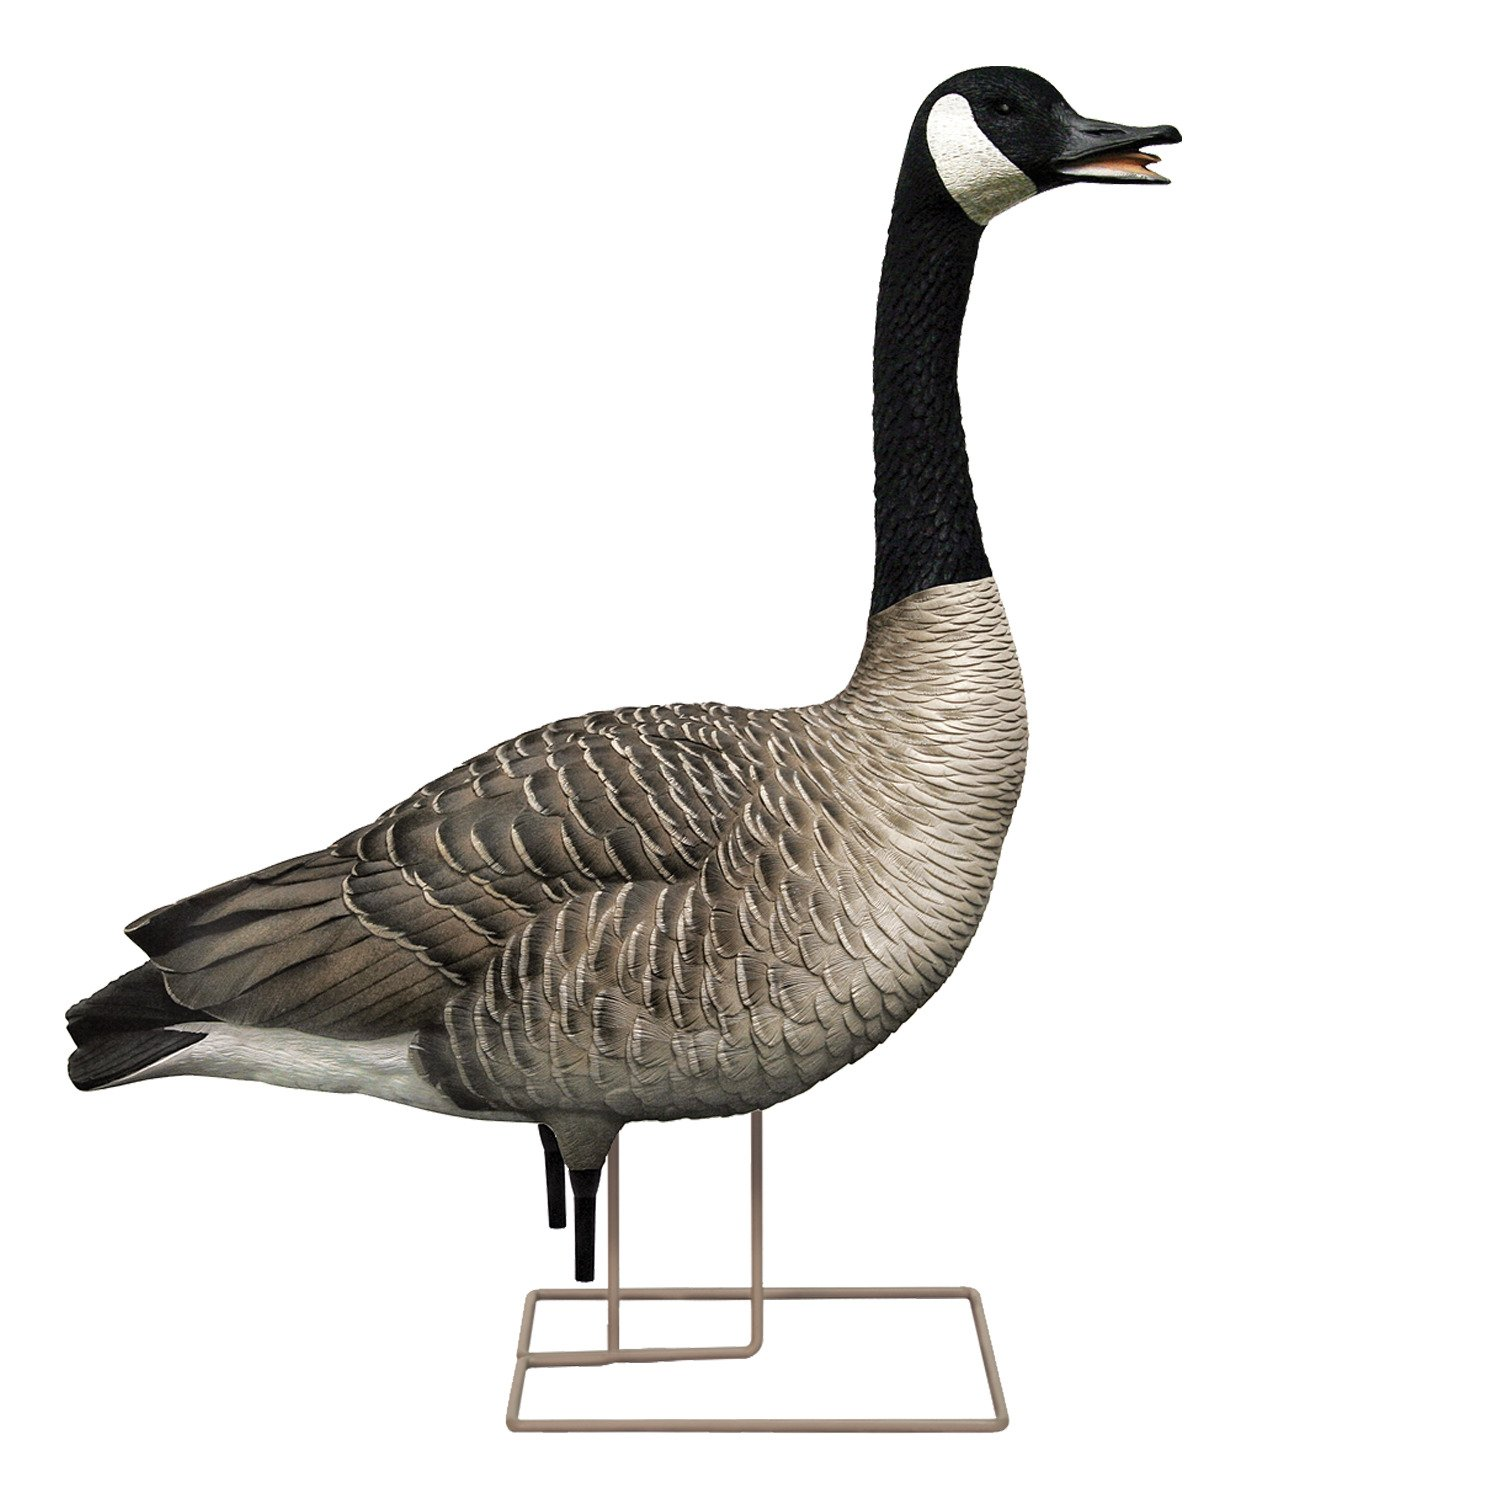 Avian-X AXP Painted Honkers Fusion Goose Decoys 6-Pack - view number 7